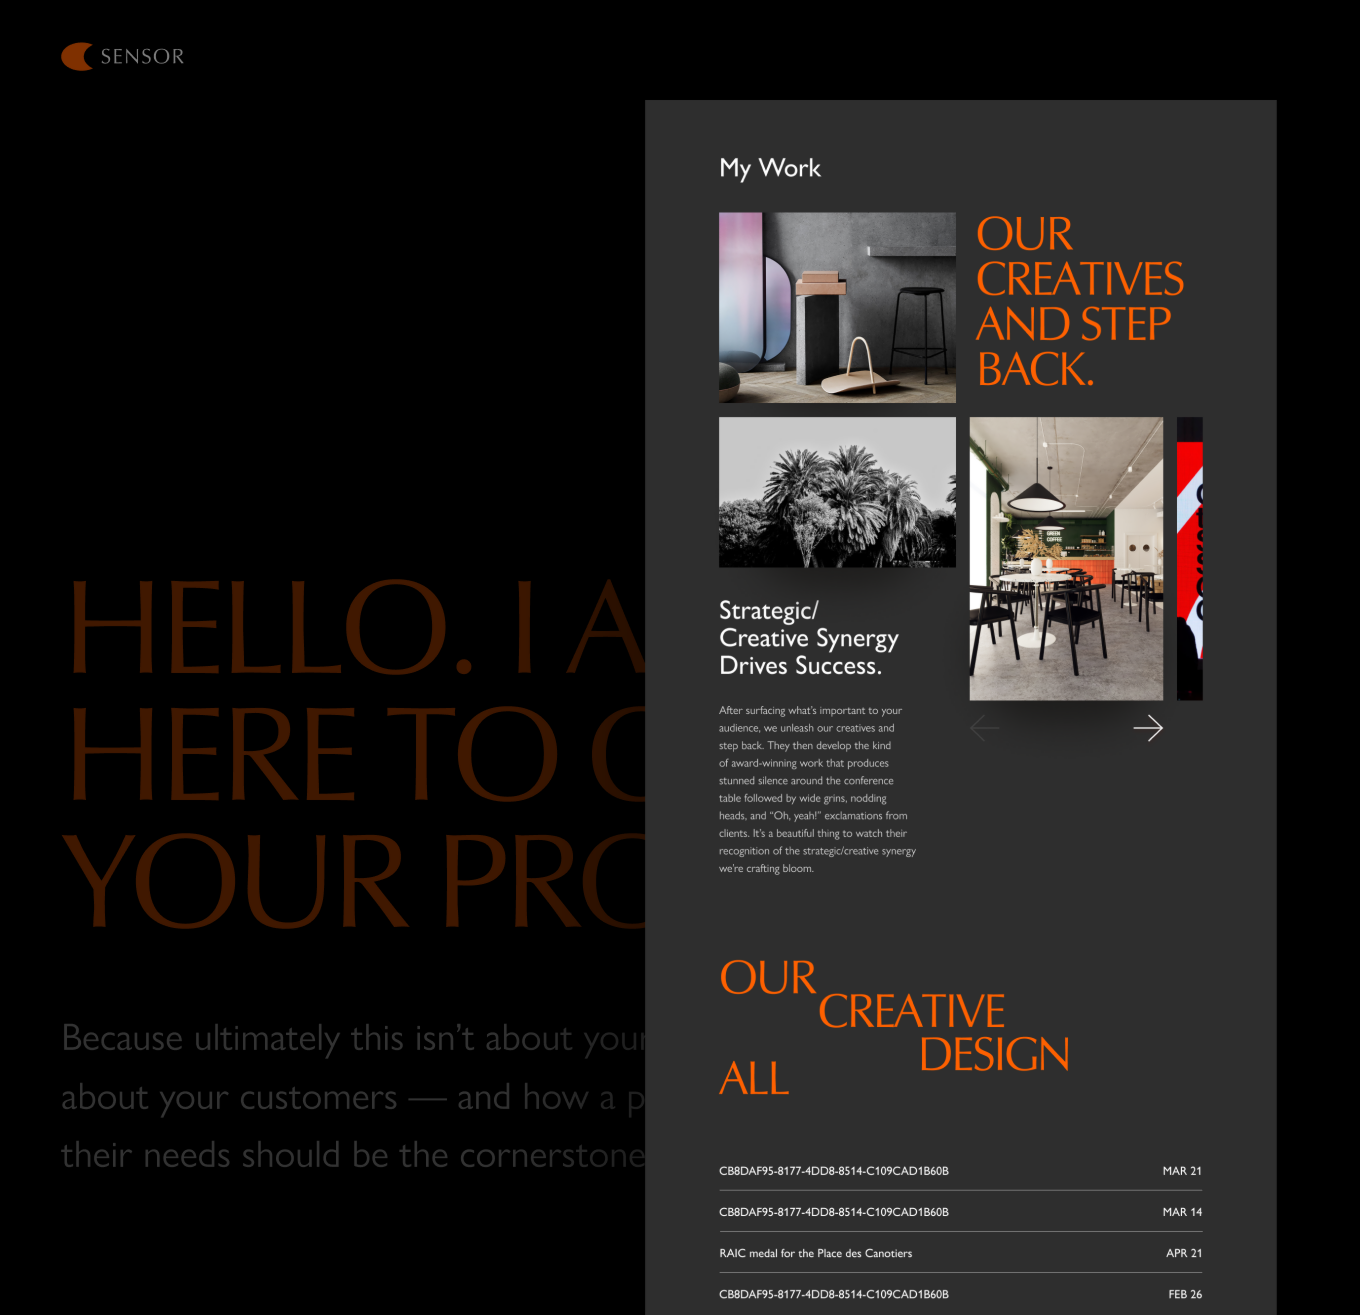 Agency portfolio landing page template. Dark style, unusual layout for photo gallery.